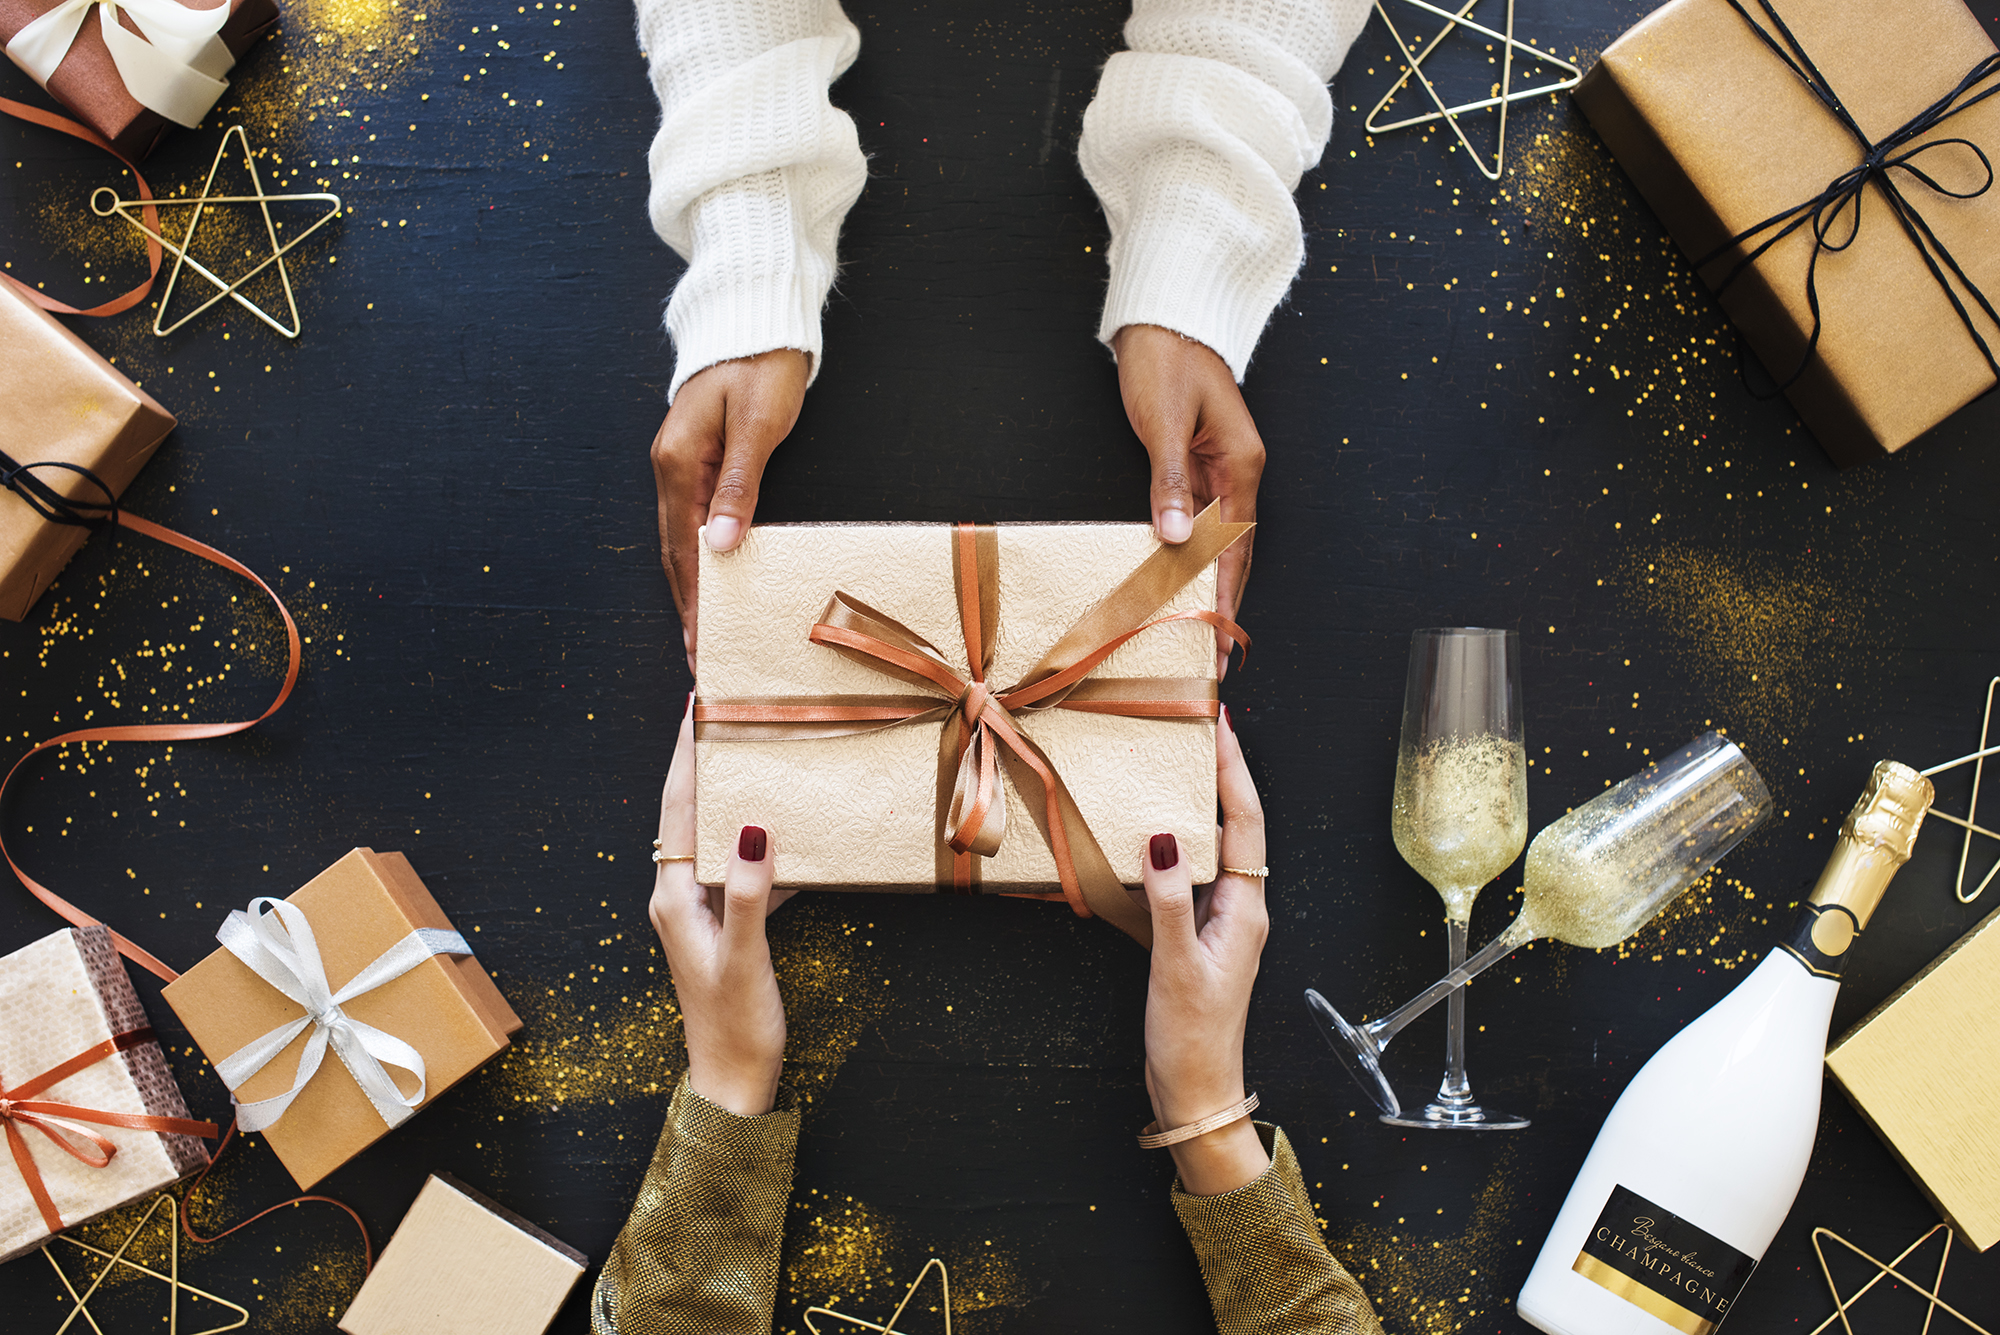 flatlay photo of a pair of hands coming from the top of the photo, handing a gift-wrapped present to a pair of hands coming from the bottom of the photo and they are surrounded by holiday gifts wrapped with bows and ribbons, gold stars, a bottle of champagne, and gold glitter.